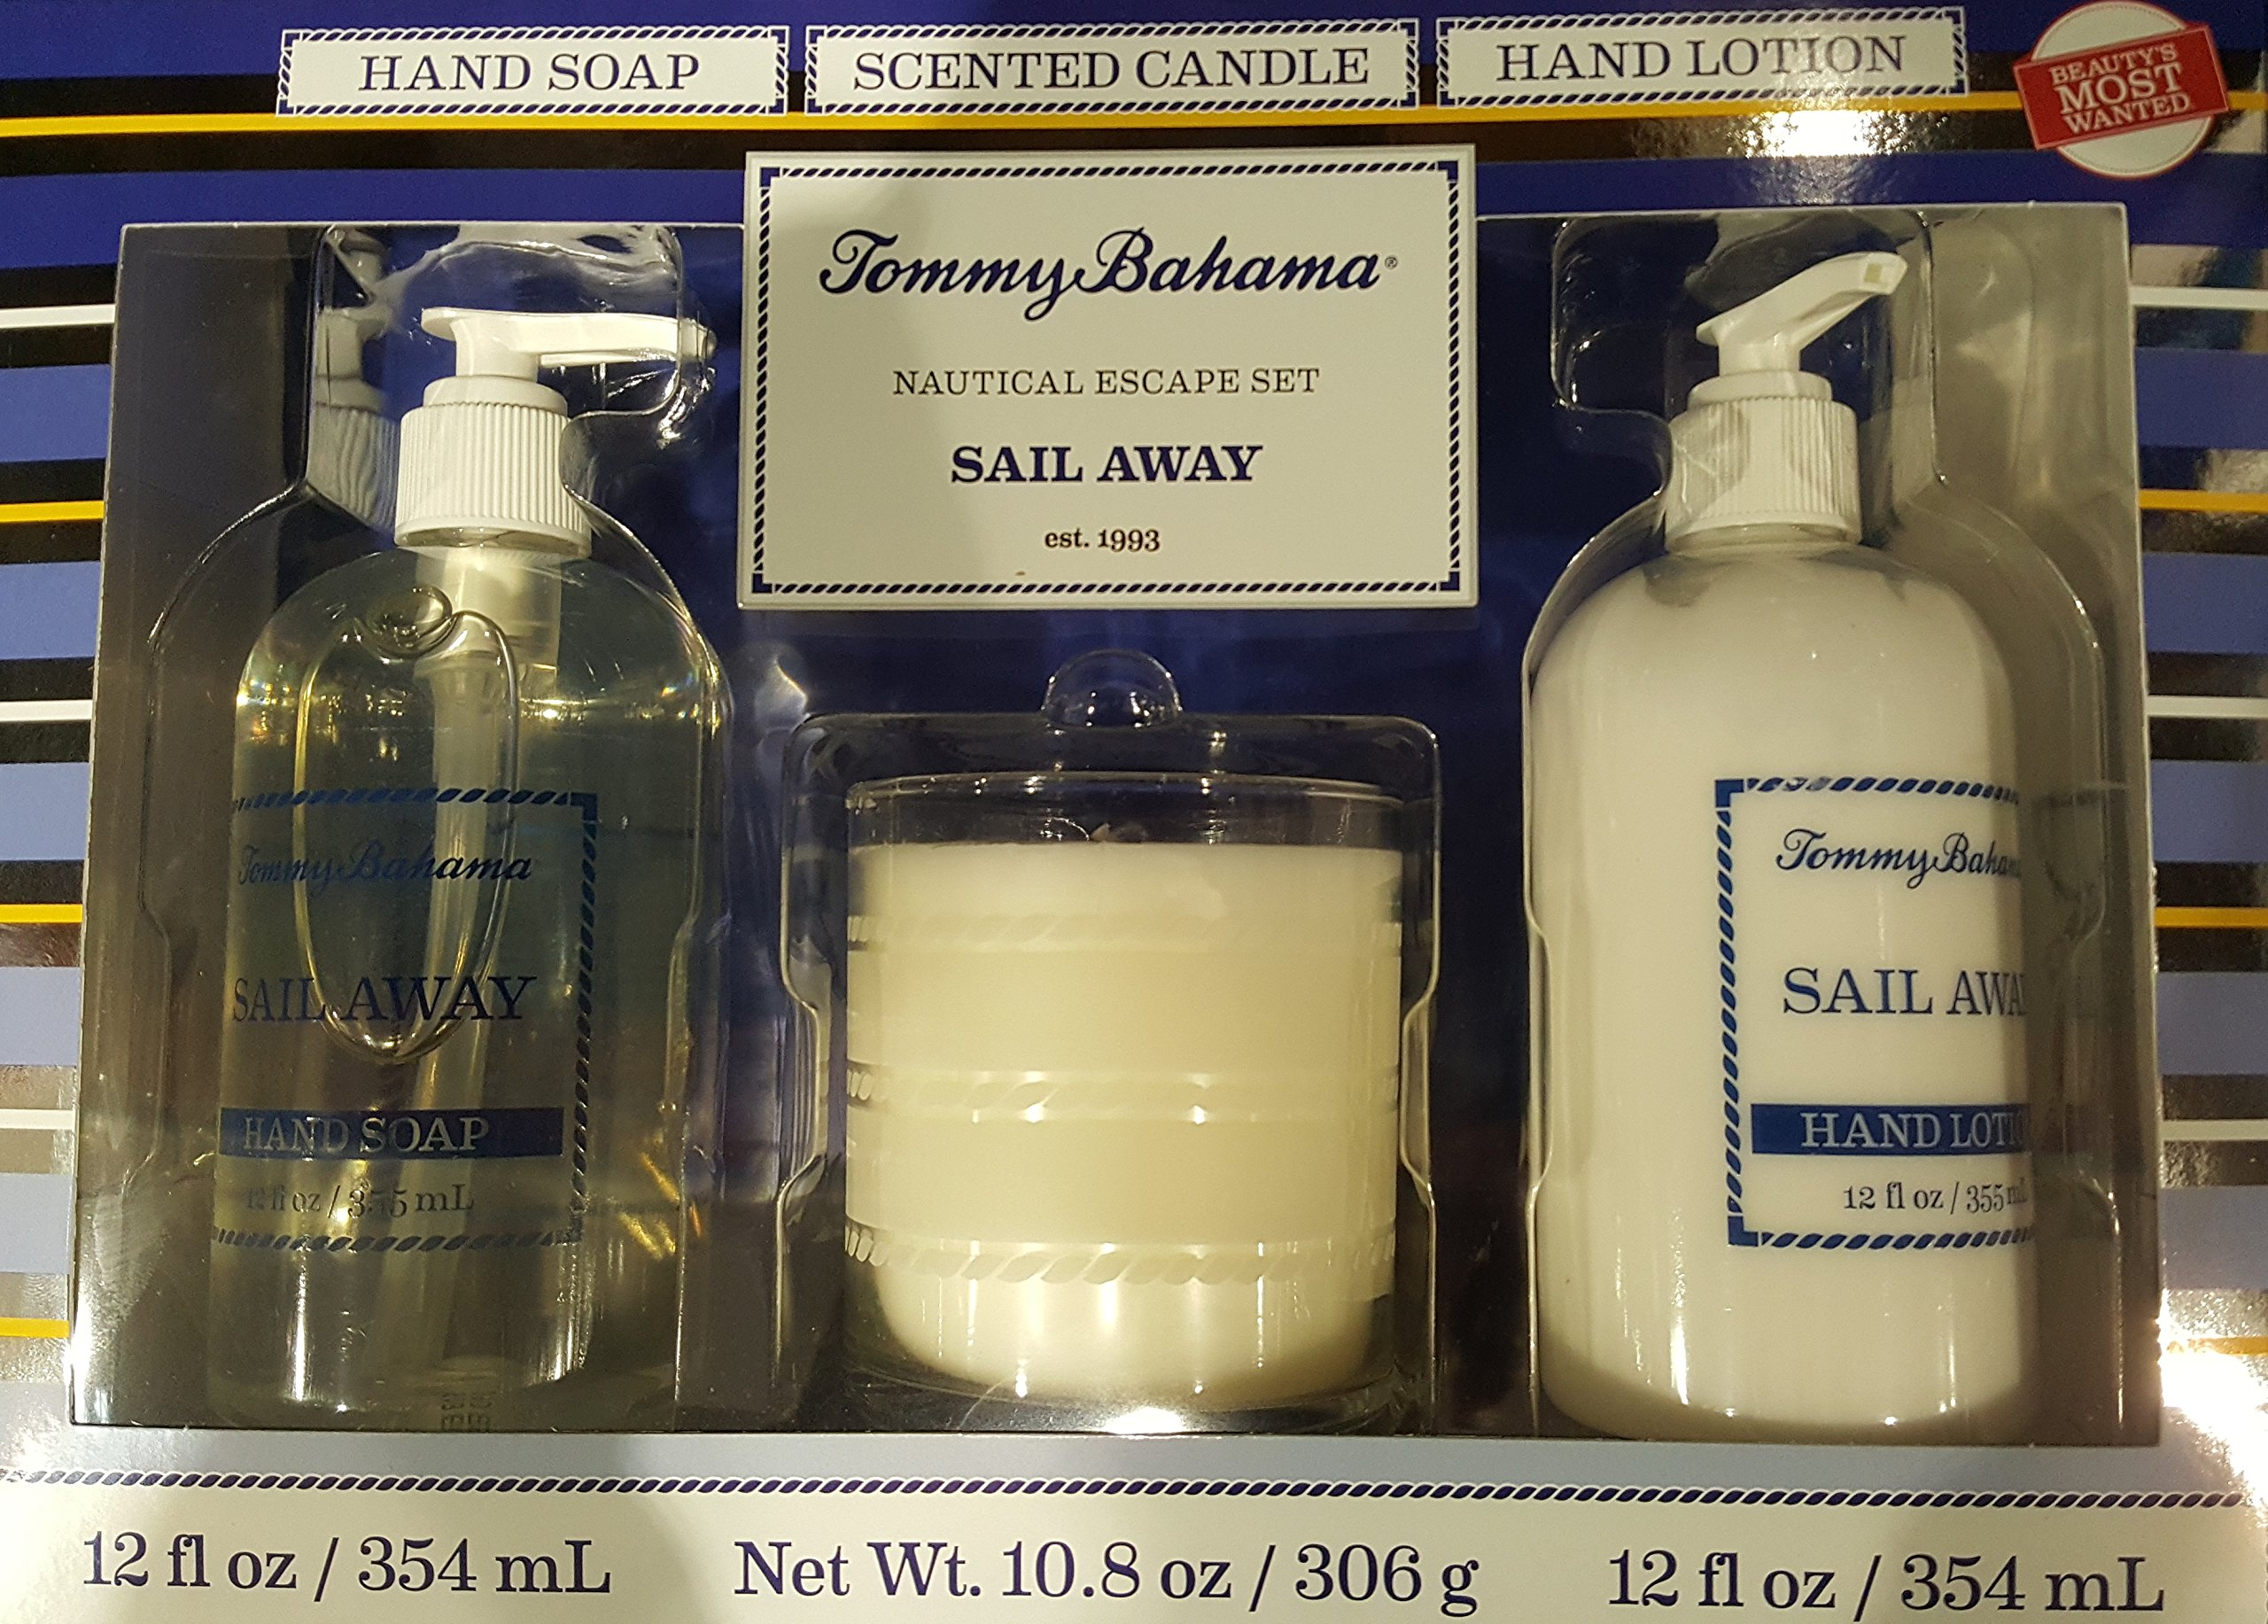 Tommy Bahama Sail Away Nautical Escape Set Hand Soap 12oz, Hand Lotion 12oz, and Scented Candle 10.8oz